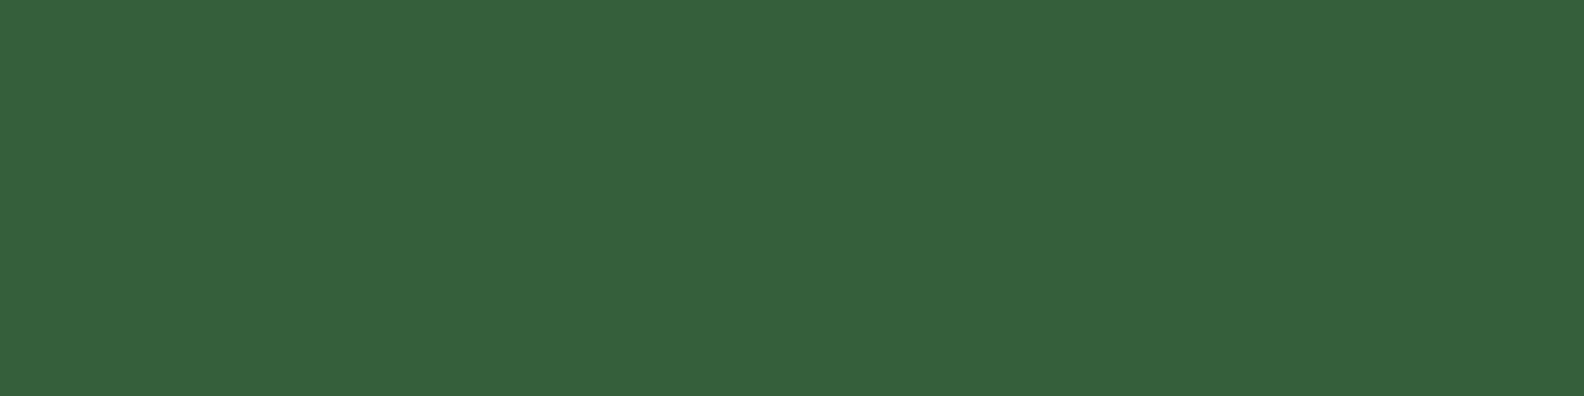 1584x396 Hunter Green Solid Color Background